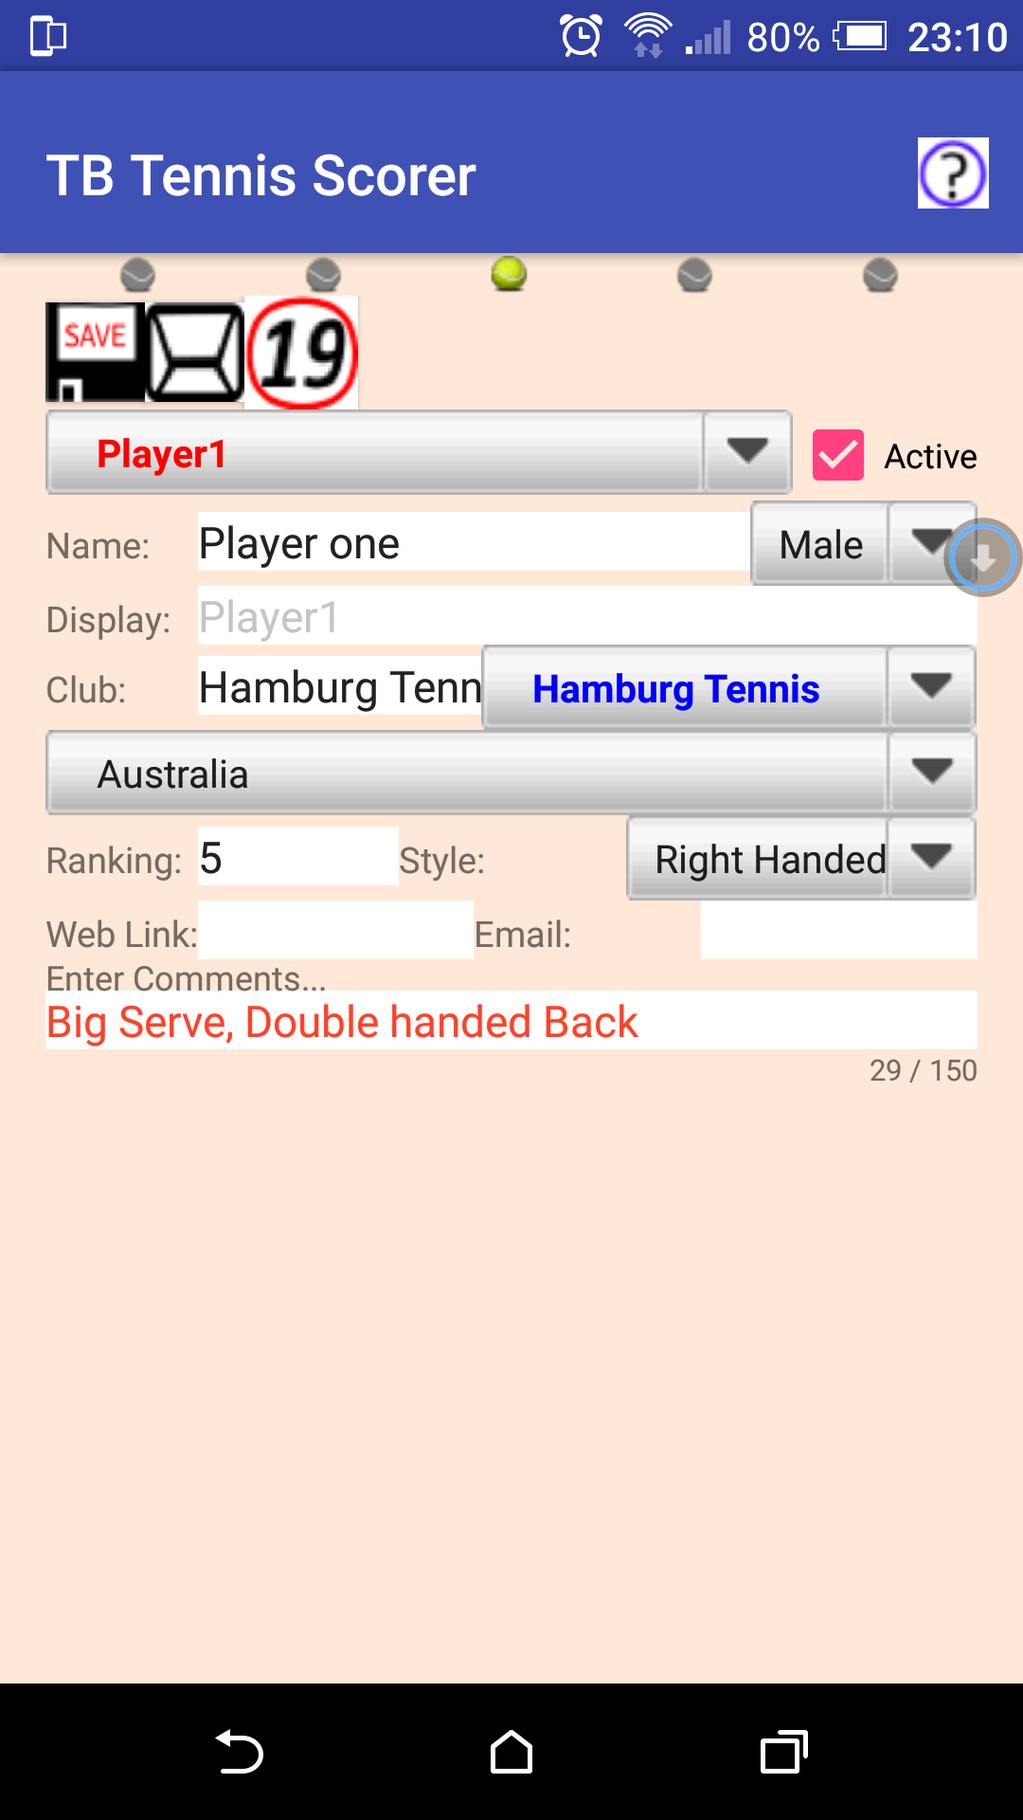 TB Tennis Scorer Screenshot 2